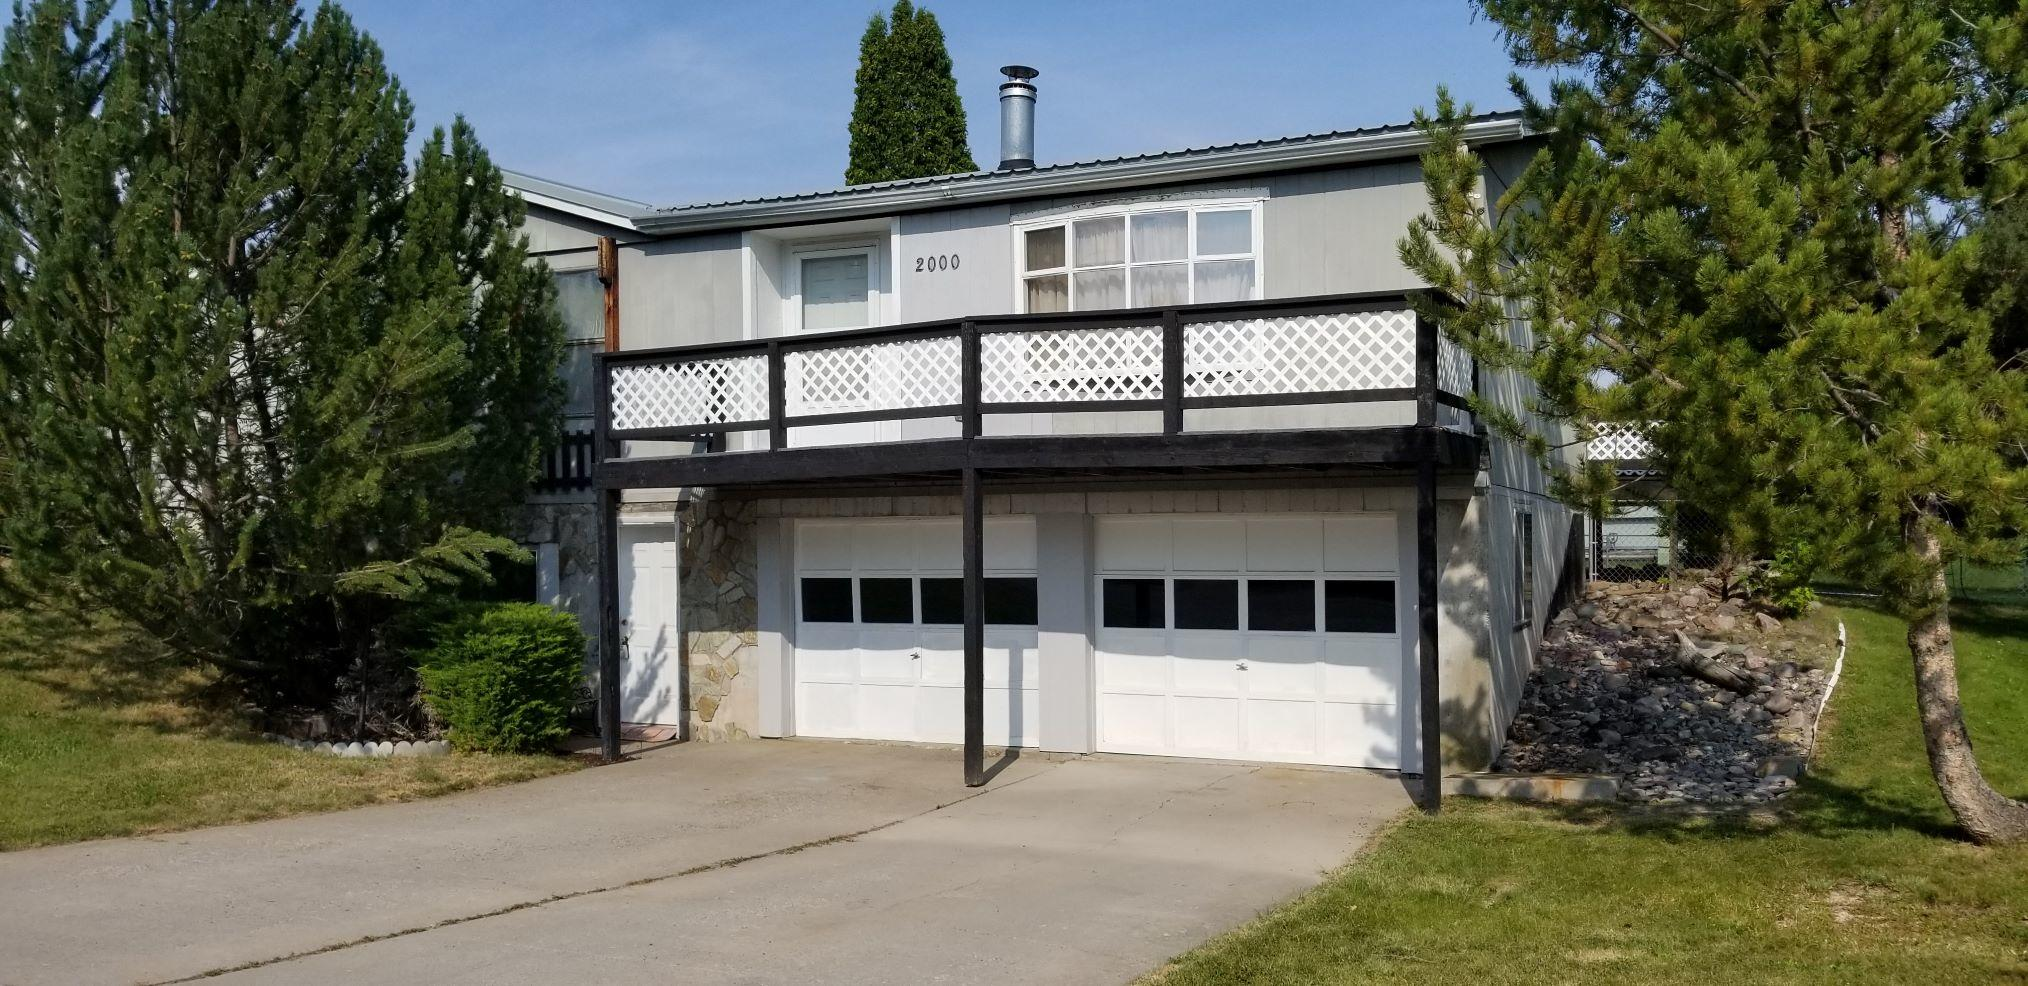 Property Image #1 for MLS #21810142